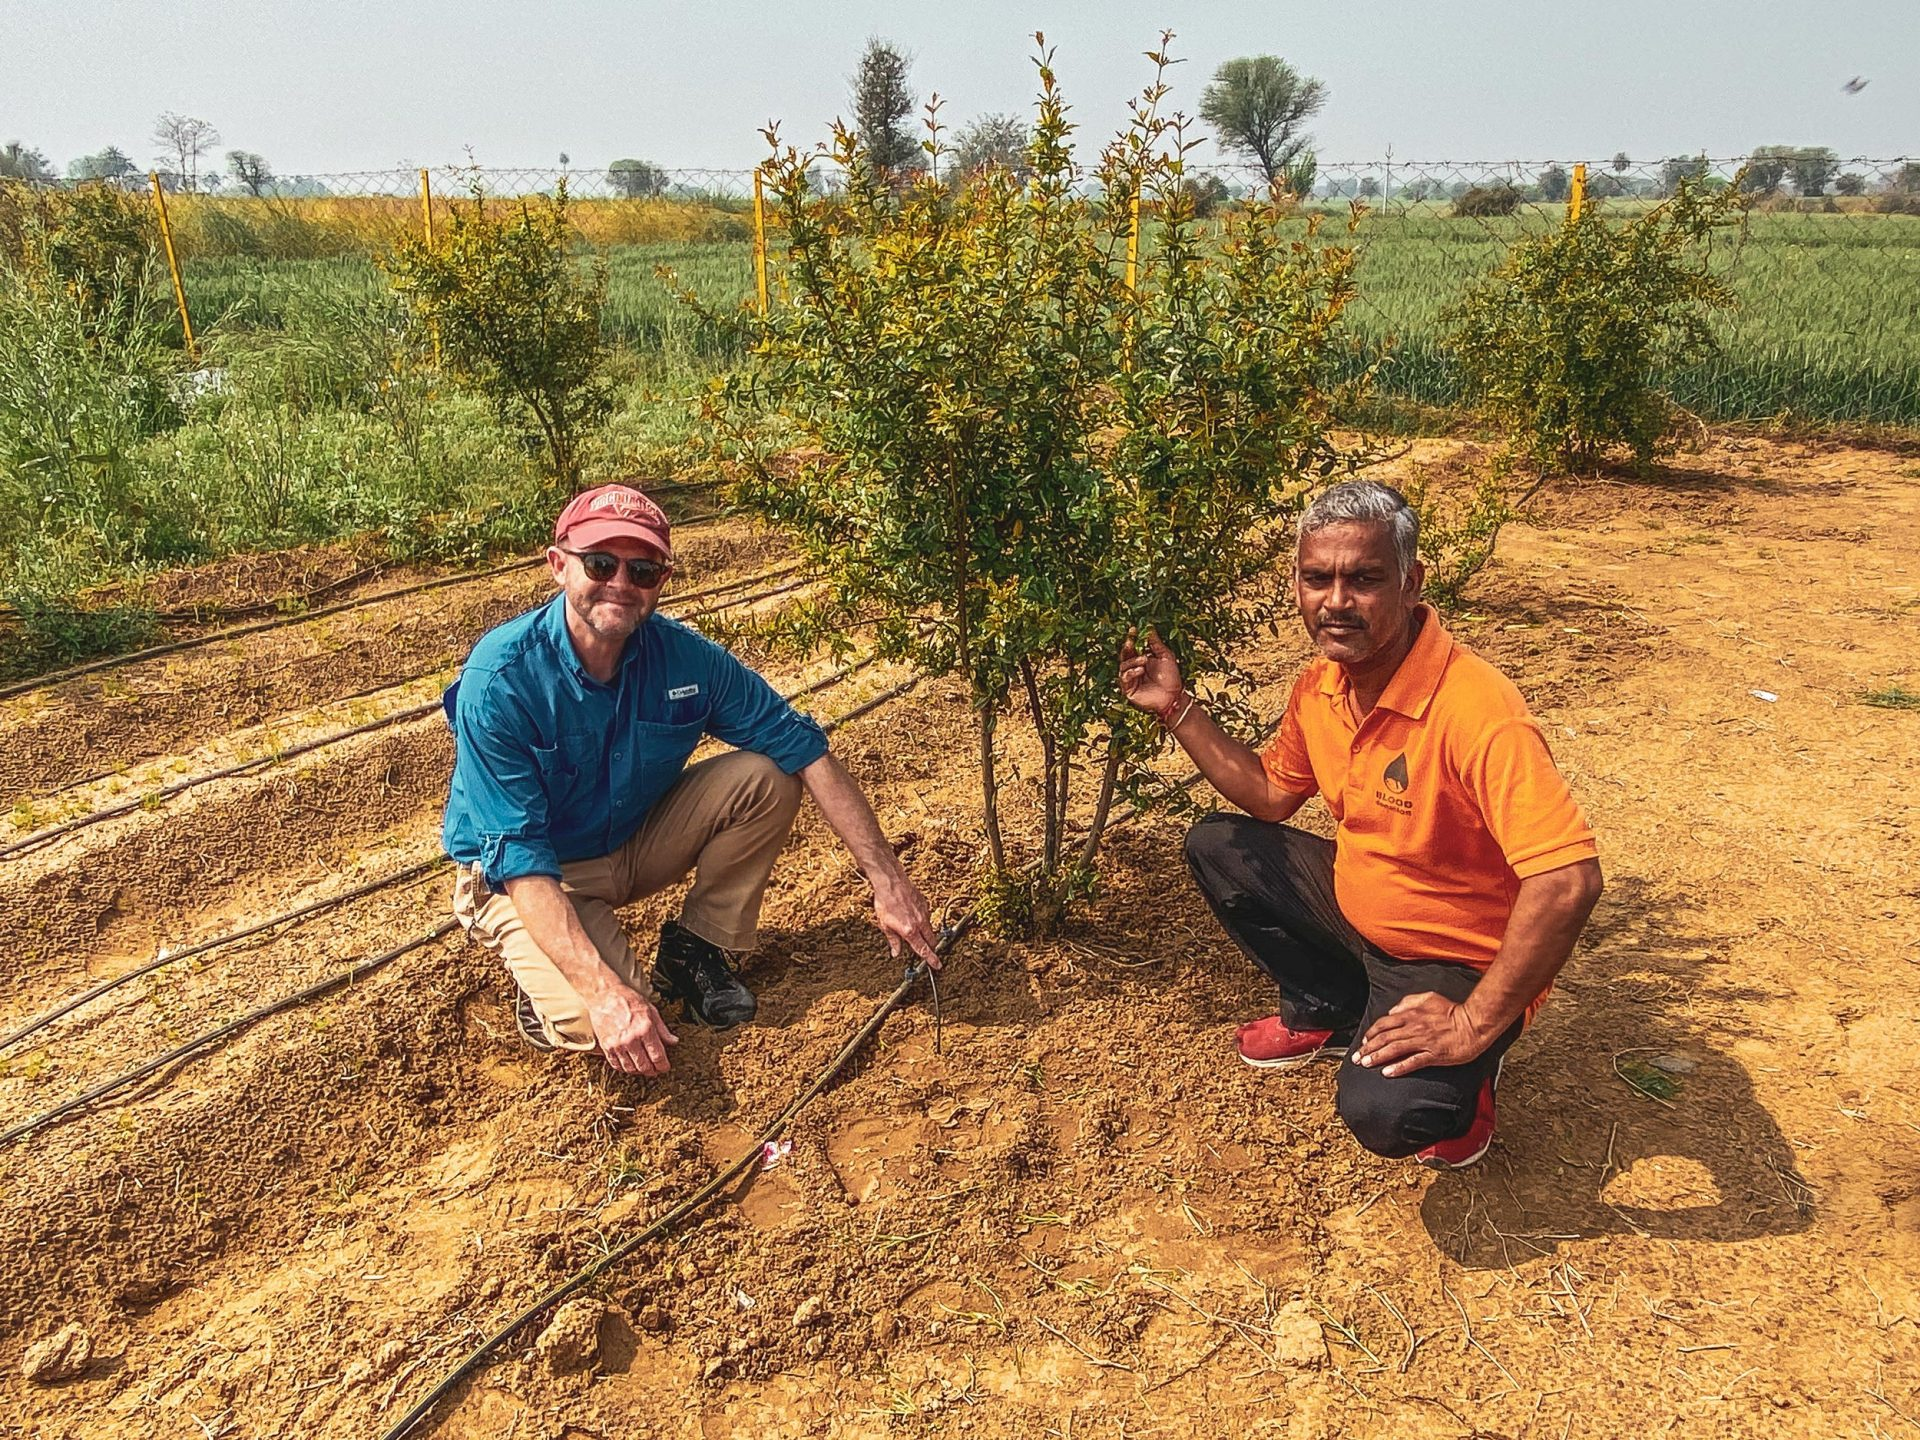 Two men pose in a field next to a pomegranate bush.